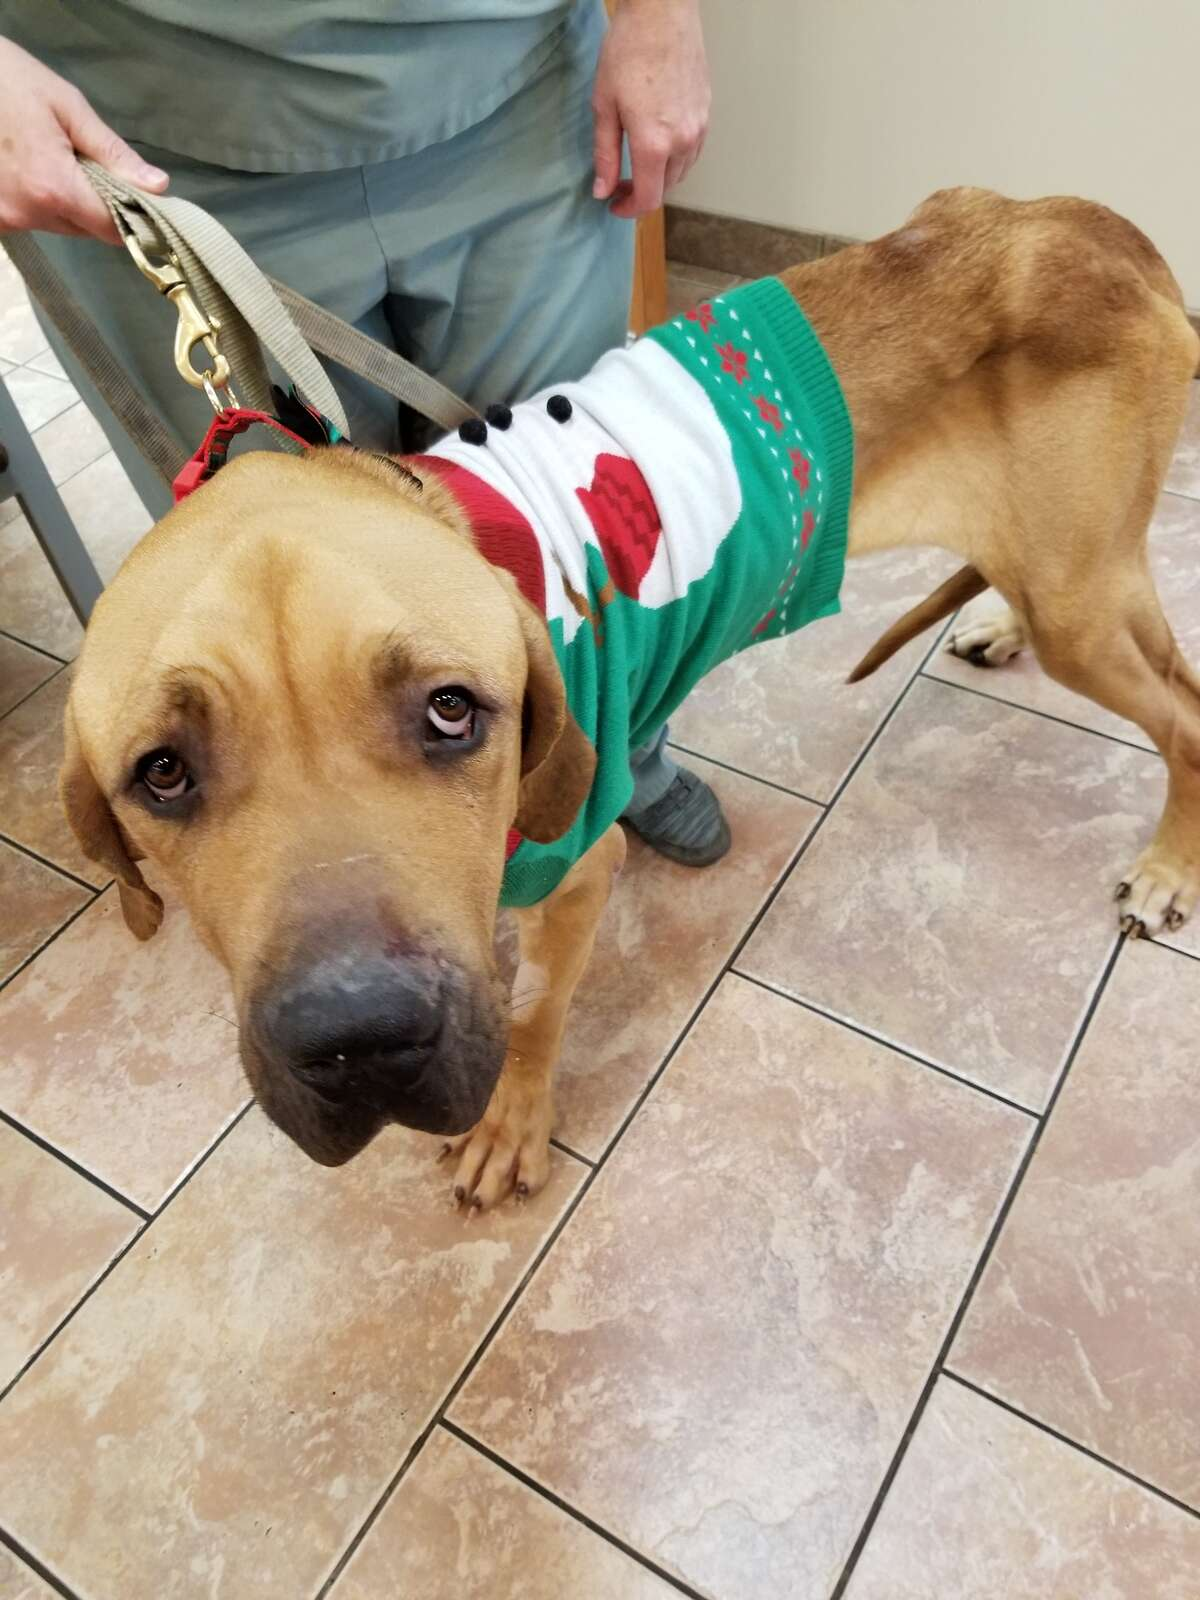 A $1,000 reward is being offered to help find the person or persons responsible for the abandonment of starving dog found early Tuesday, Dec. 4, 2018, in a Troy park..